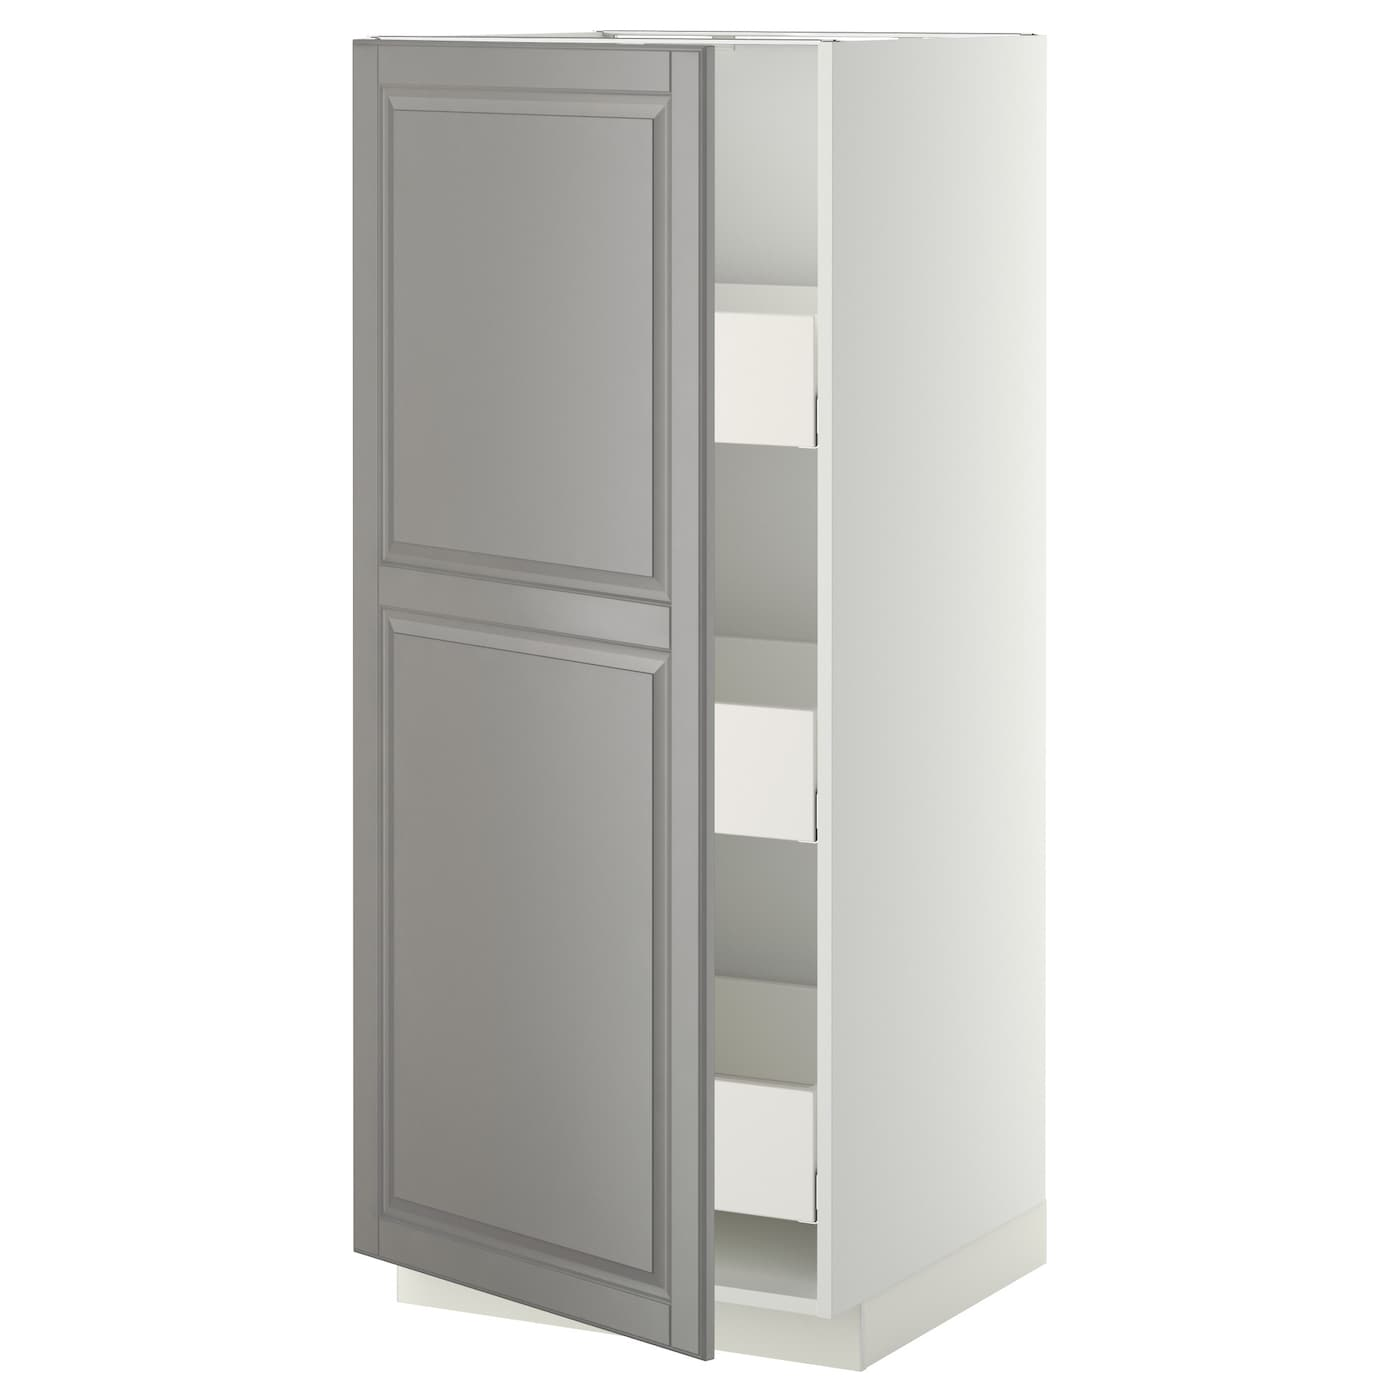 metod maximera high cabinet with drawers white bodbyn grey 60 x 60 x 140 cm ikea. Black Bedroom Furniture Sets. Home Design Ideas